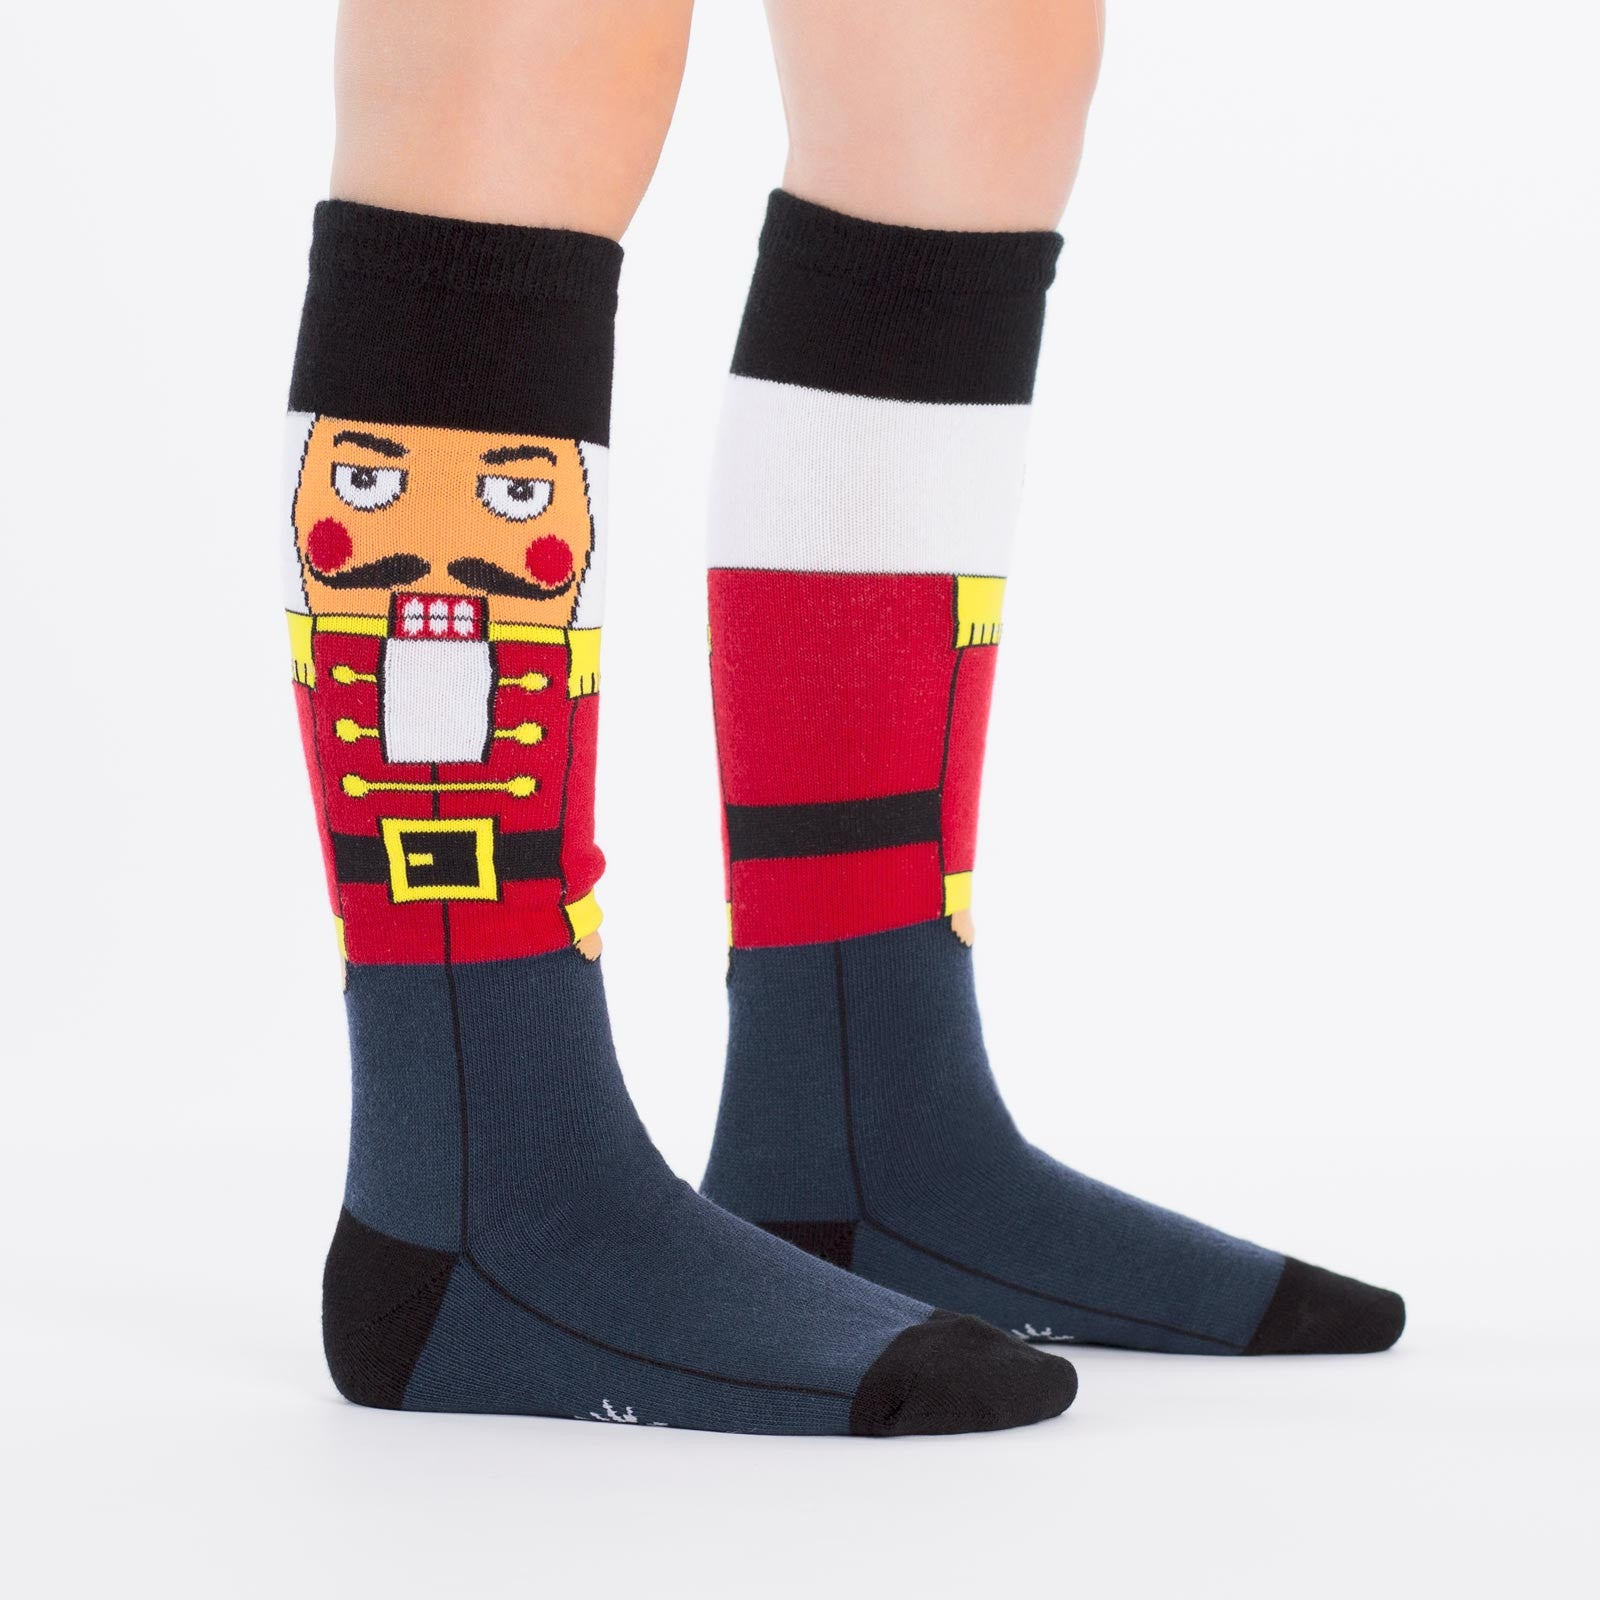 Sport Socks Manufacturer in Conover NC. Dealers are welcome and wholesale and dropshipping is available for approved dealers.